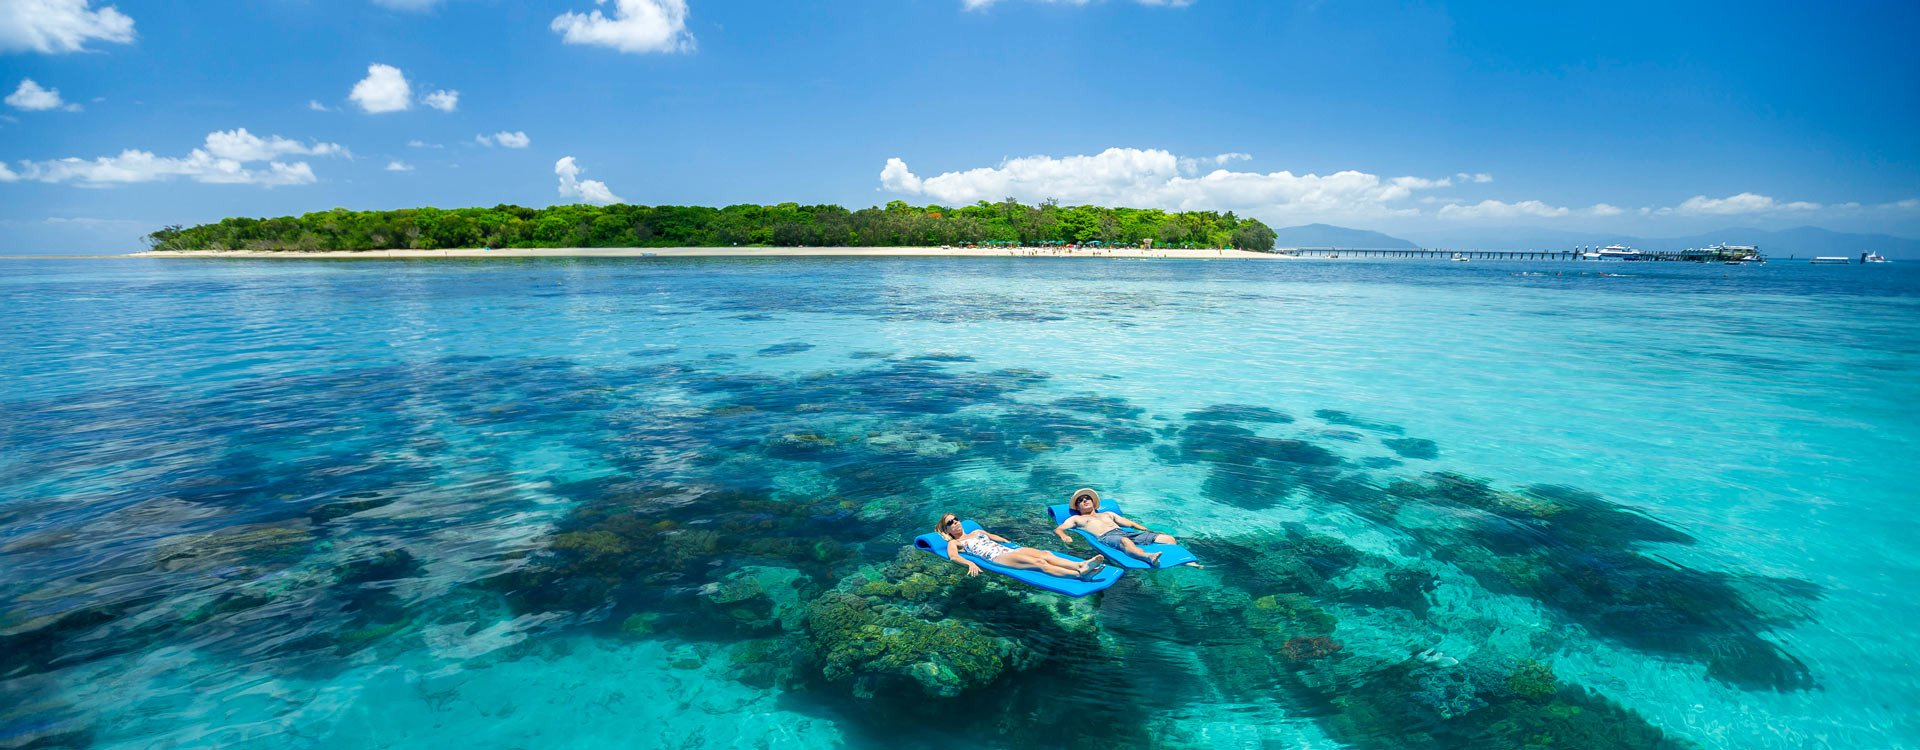 Green Island and Great Barrier Reef Tour